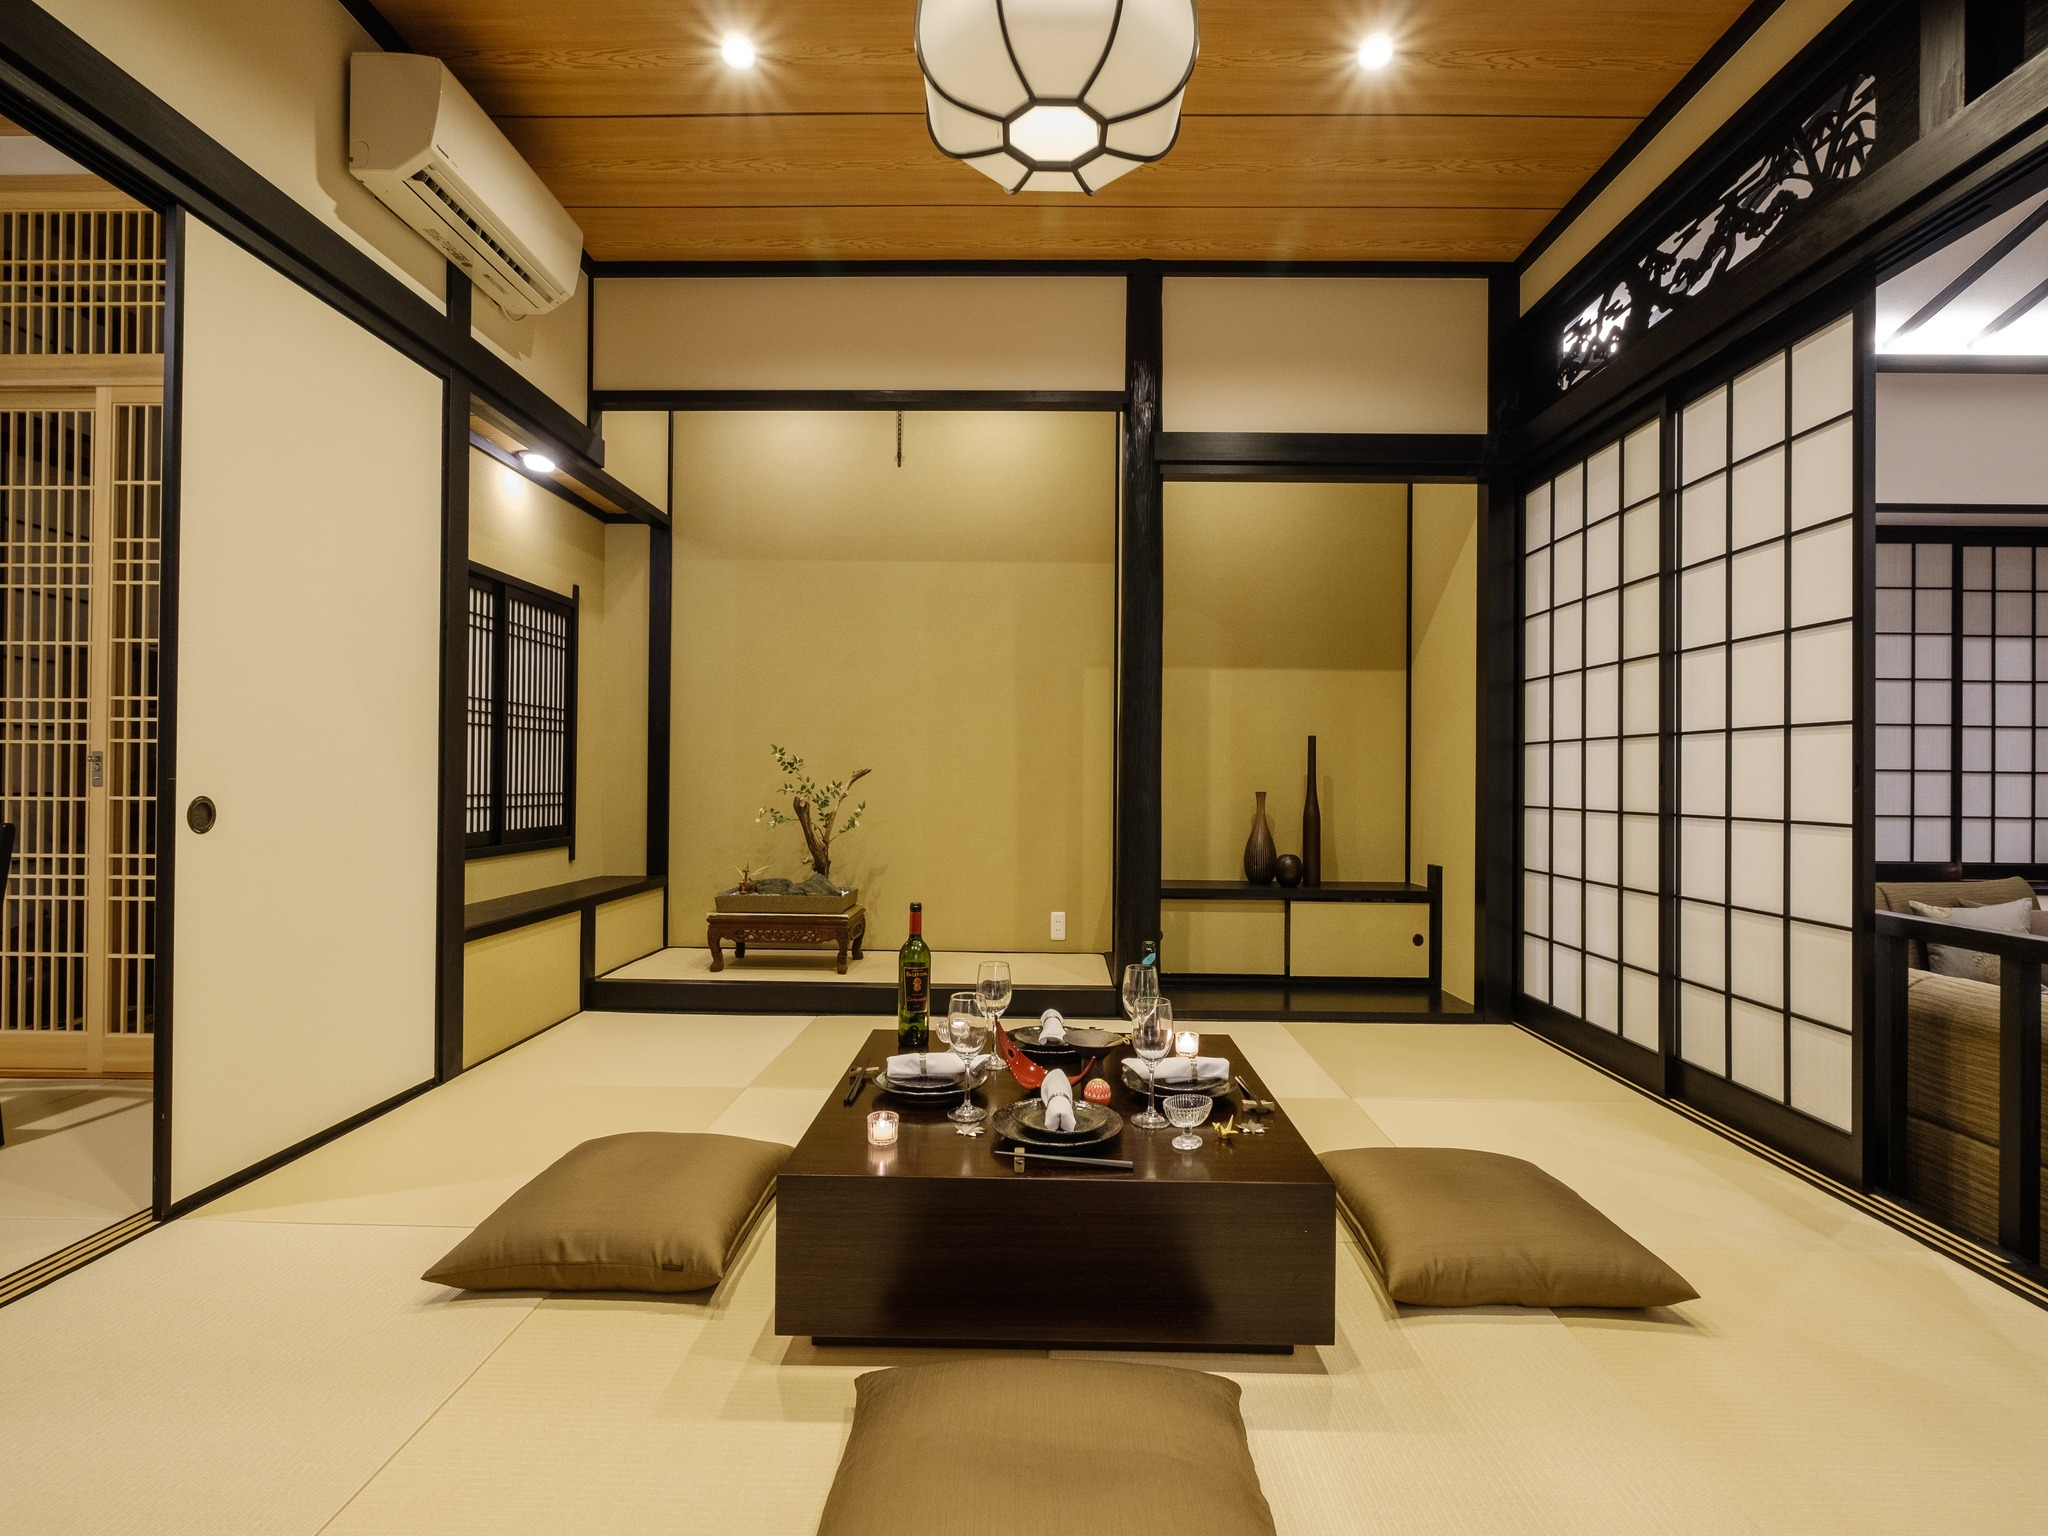 Spacious Japanese-style room with traditional Japanese crafts tatami. / 日本の伝統工芸品【畳】を使用した広々とした和室